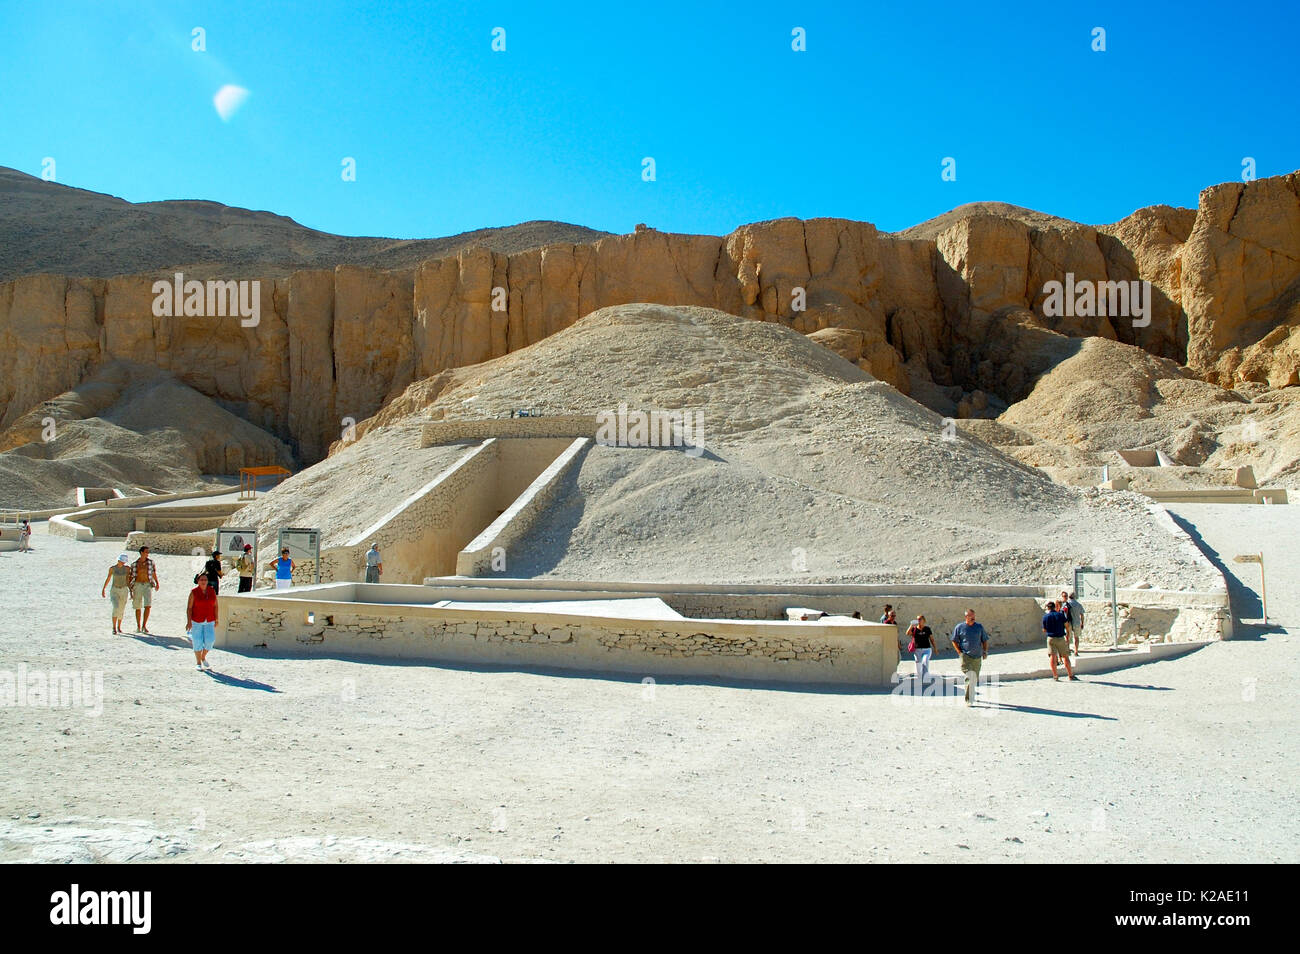 Tombs at the Valley of the Kings. The entrance to the tomb of Ramses VI and on the right the entrance to the tomb of Tutankhamun. Thebes. Egypt - Stock Image